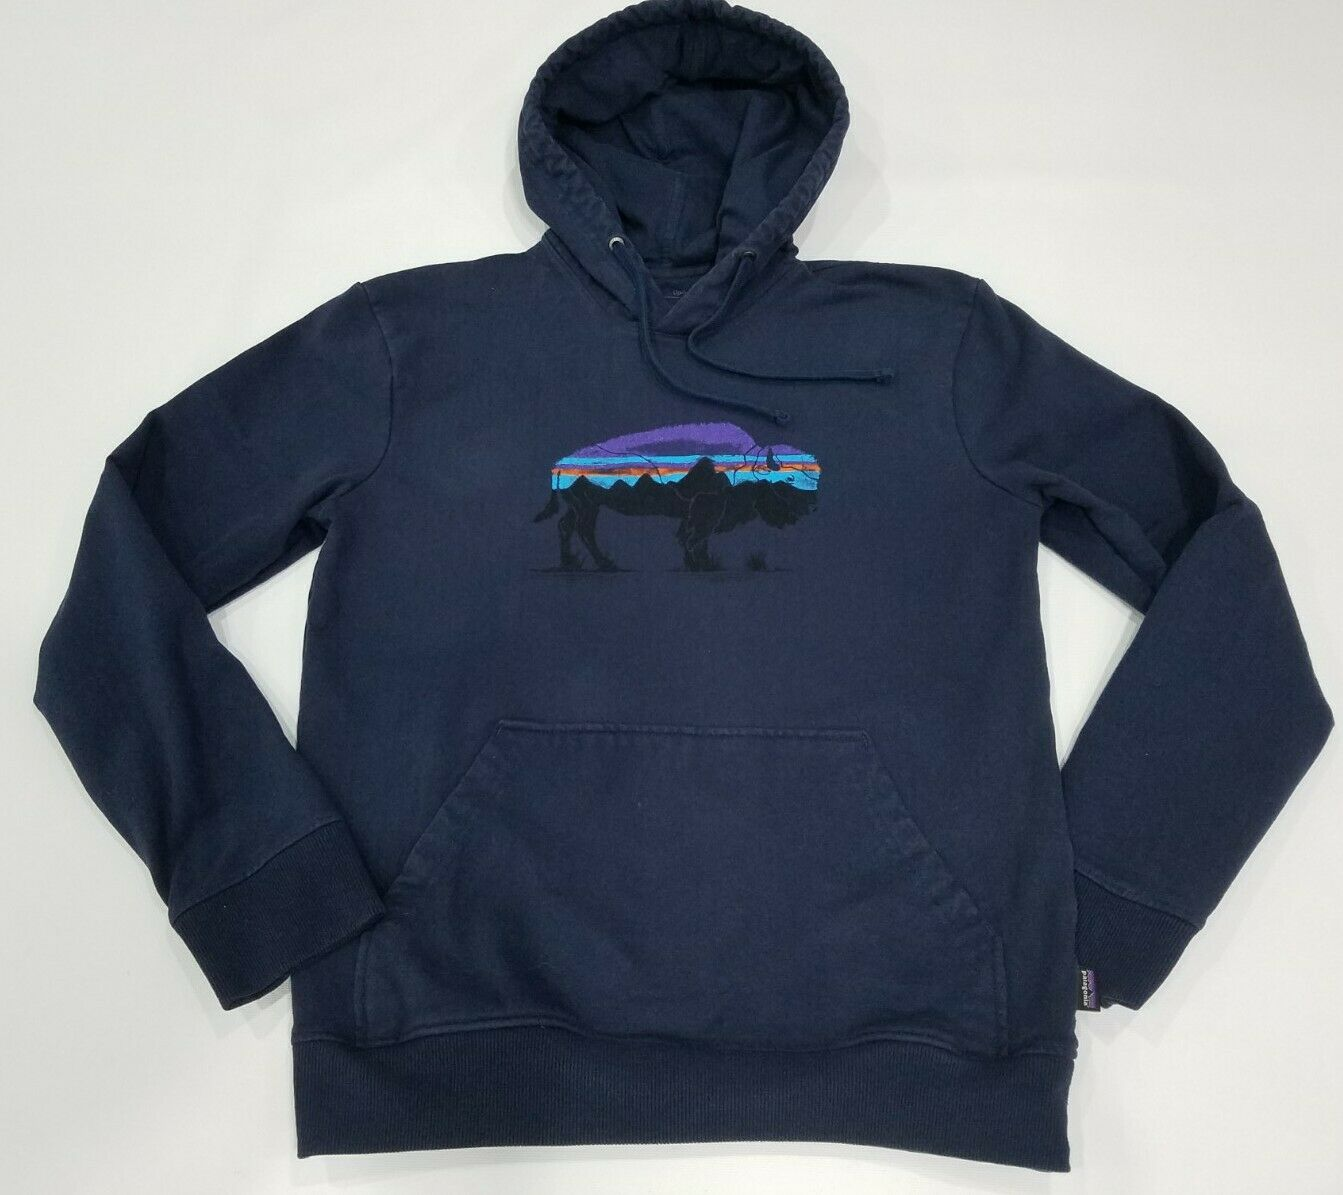 Patogonia Navy Blue Pull Over hoodie sweatshirt Size Small